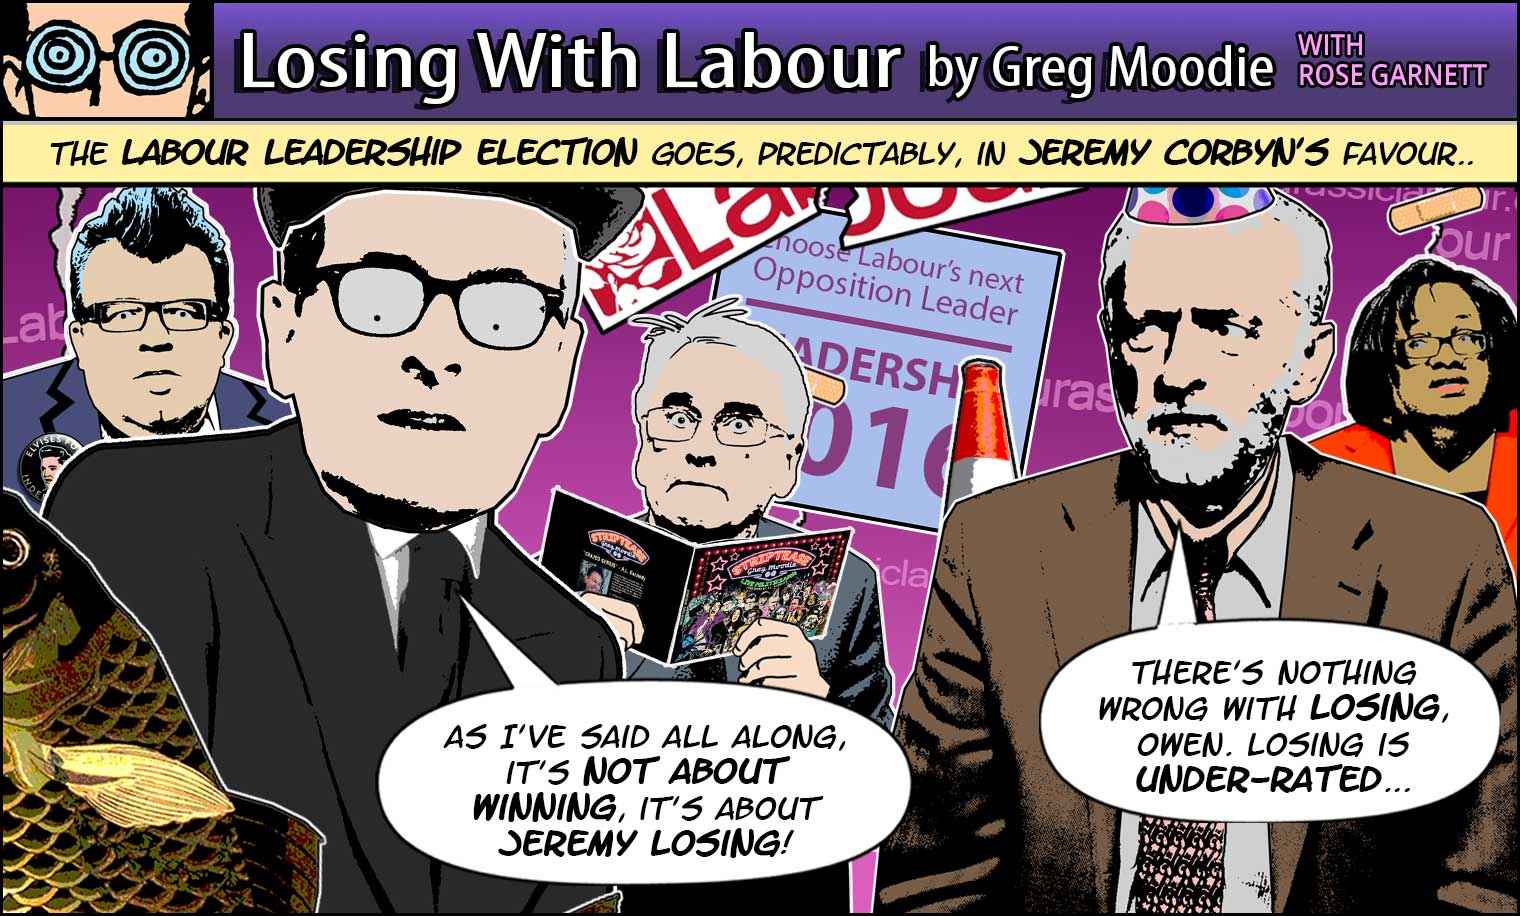 Losing With Labour